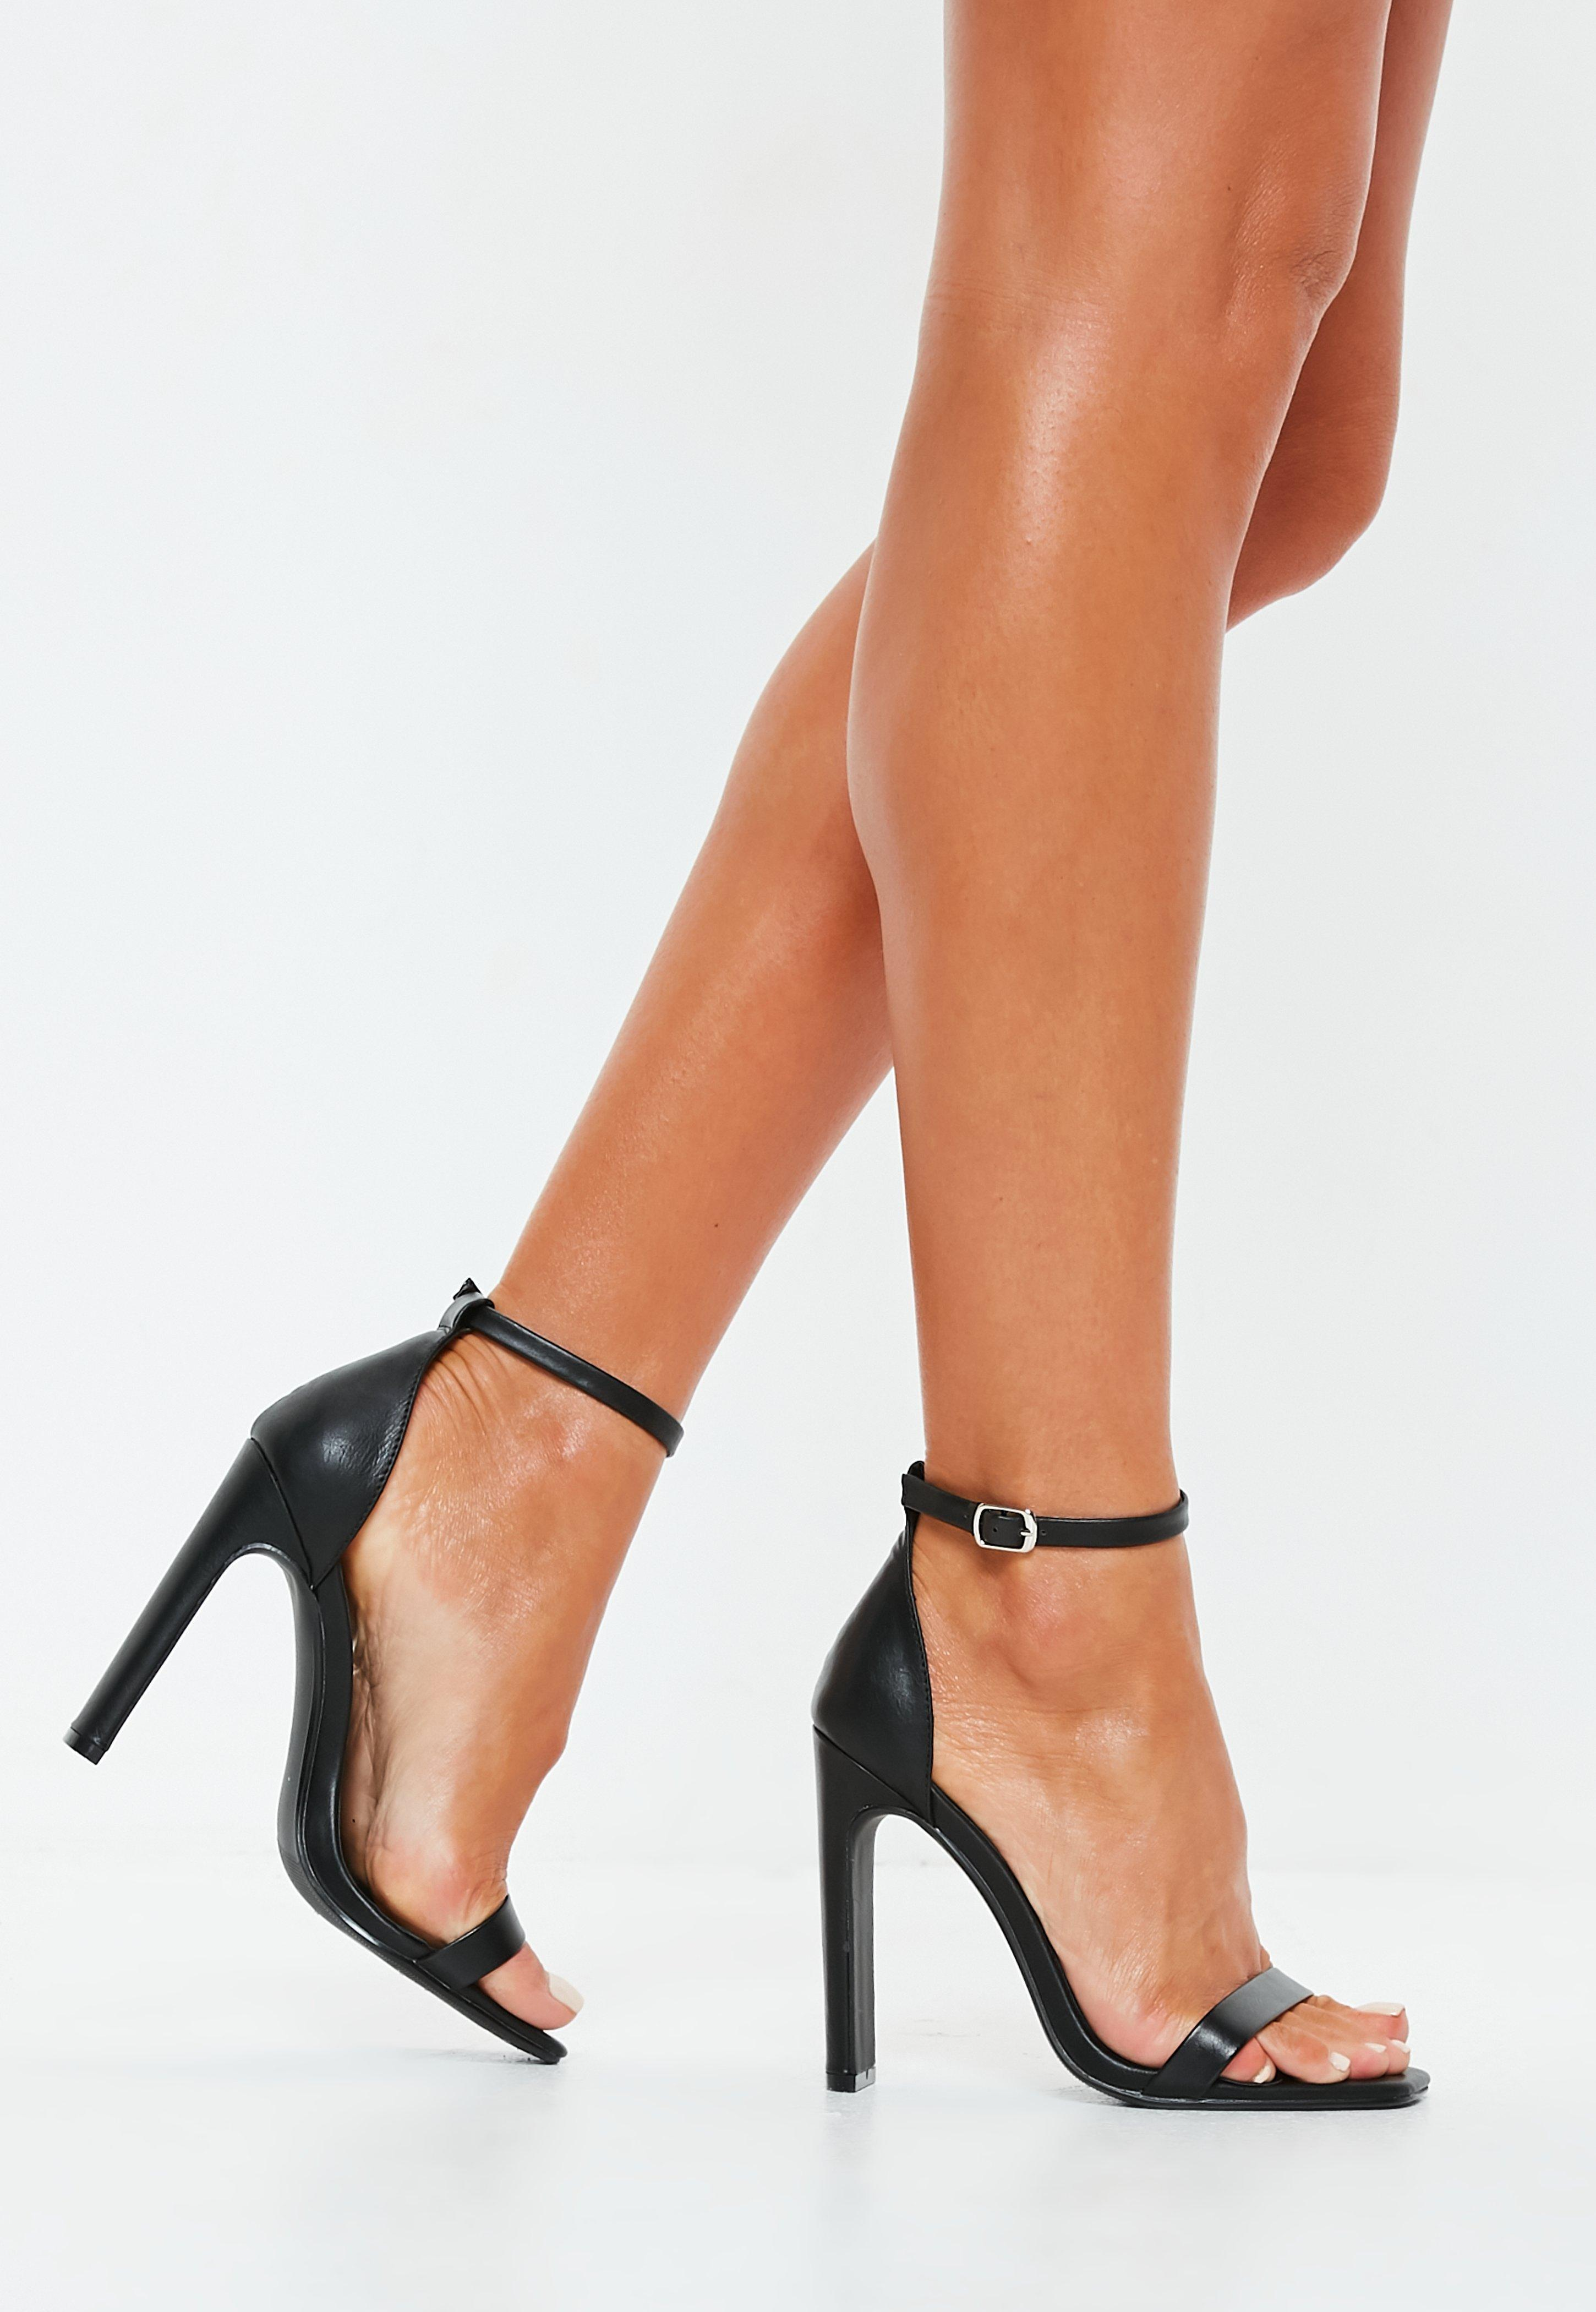 c344f09416 Lyst - Missguided Black Faux Leather Barely There Square Toe Heels ...